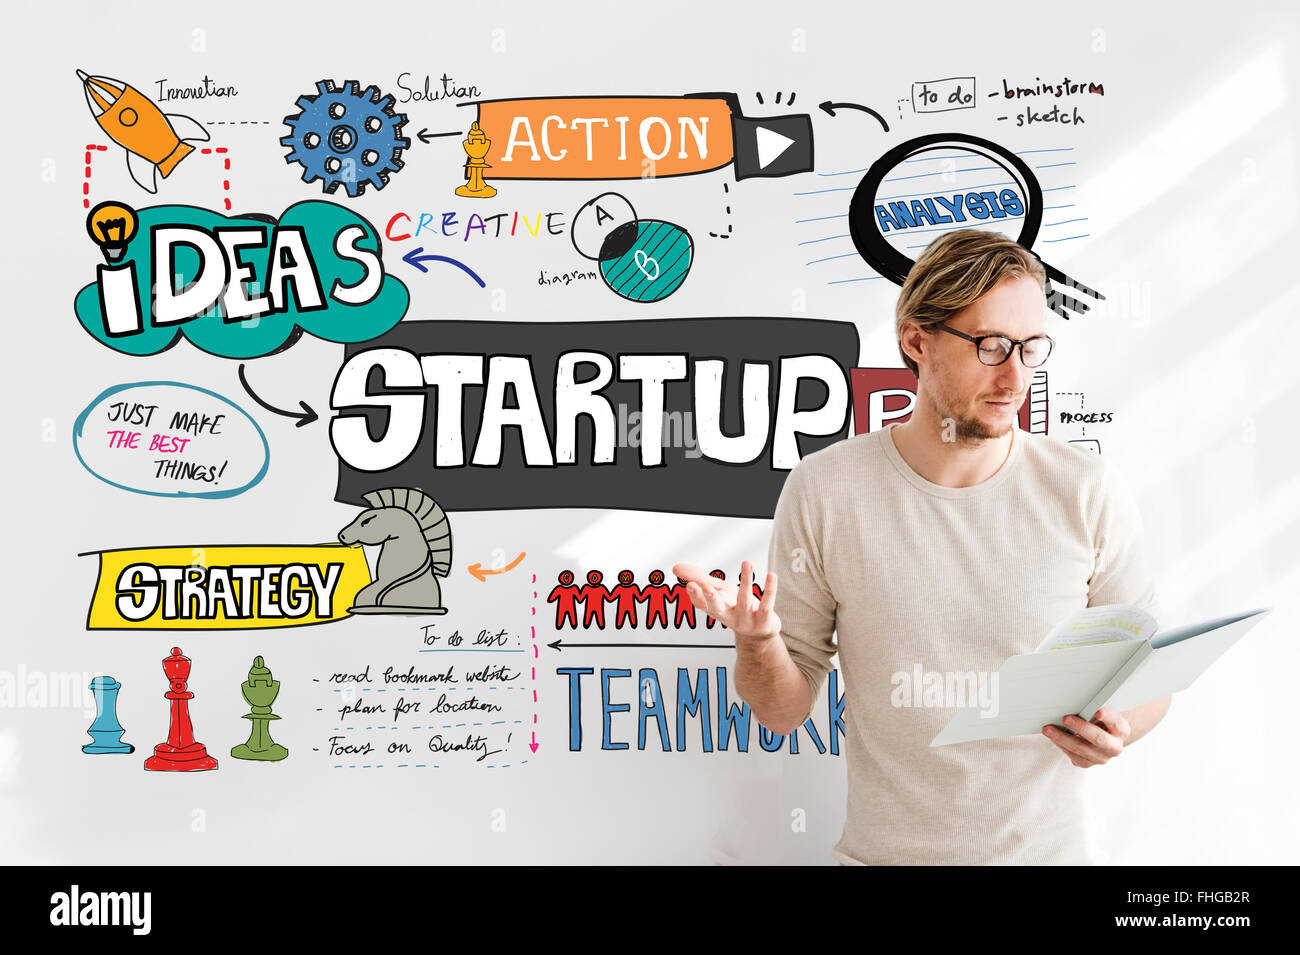 Start Up Business Growth Launch Aspiration Concept - Stock Image